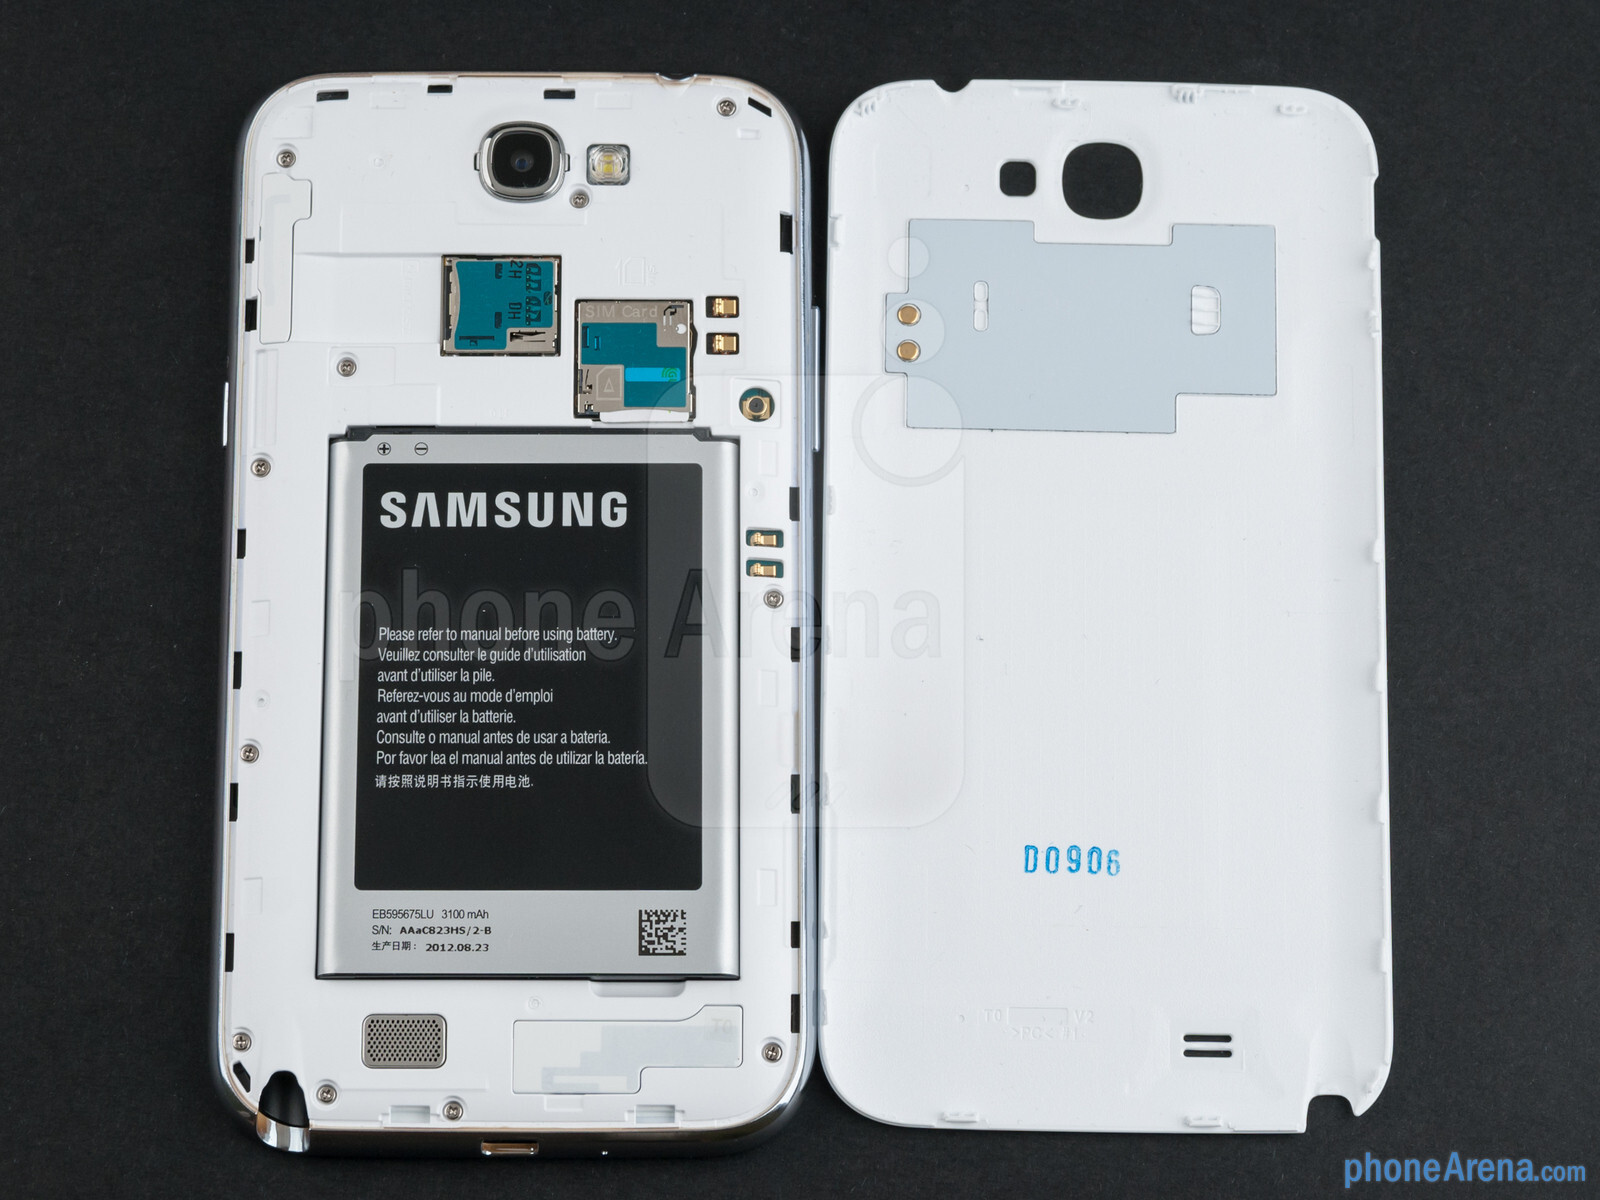 Samsung Galaxy Note 2 (Note II) Full Review - Cursed4Eva ...